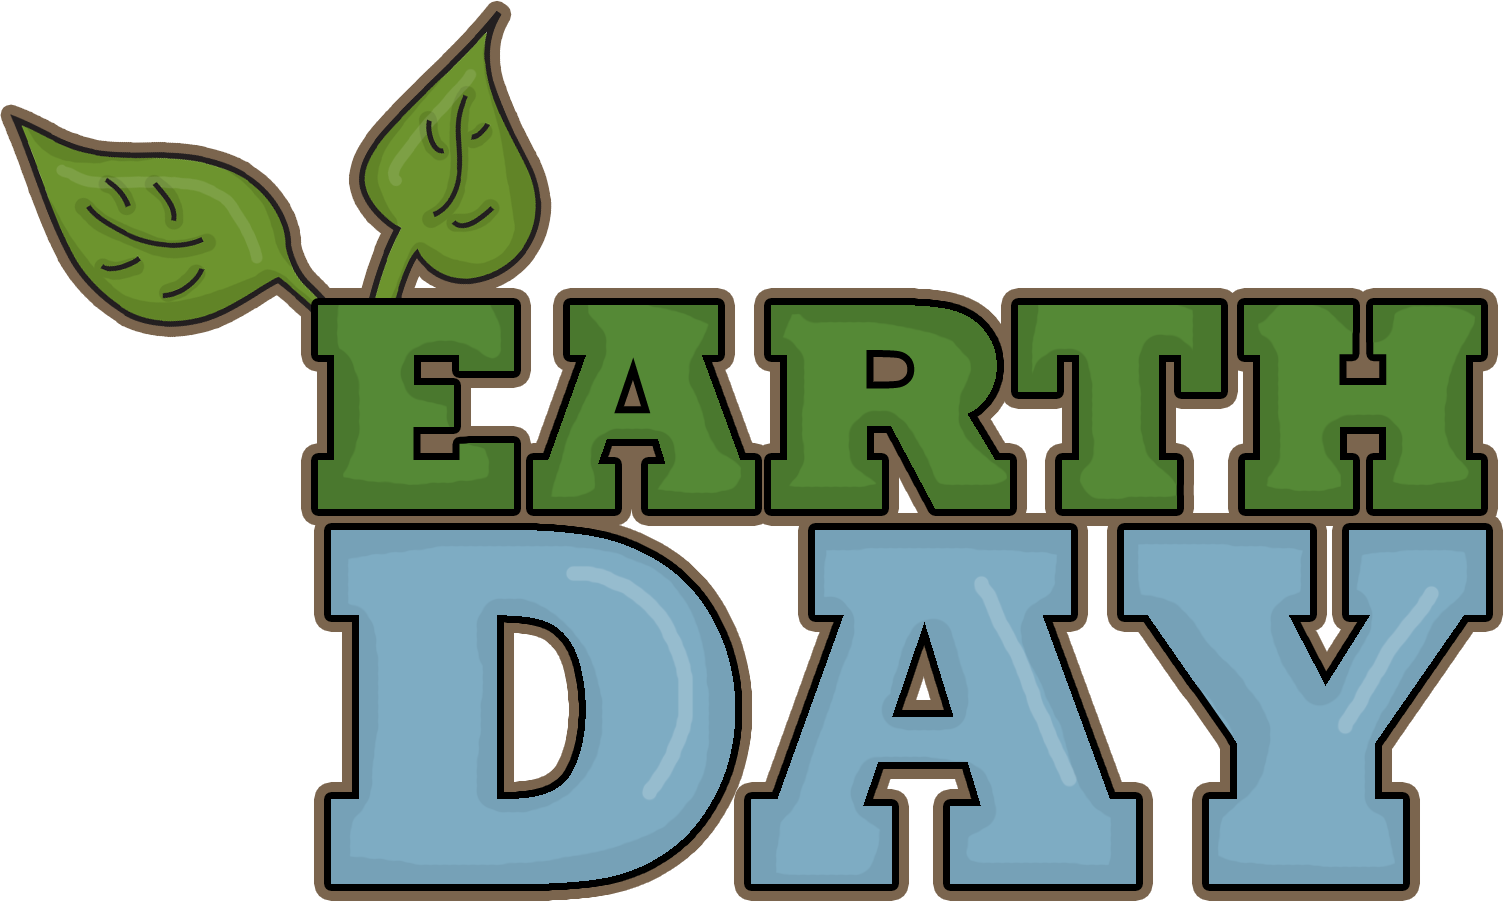 April fools day clipart for free png library stock The Best of Teacher Entrepreneurs II: April Fool's Day and Earth Day ... png library stock